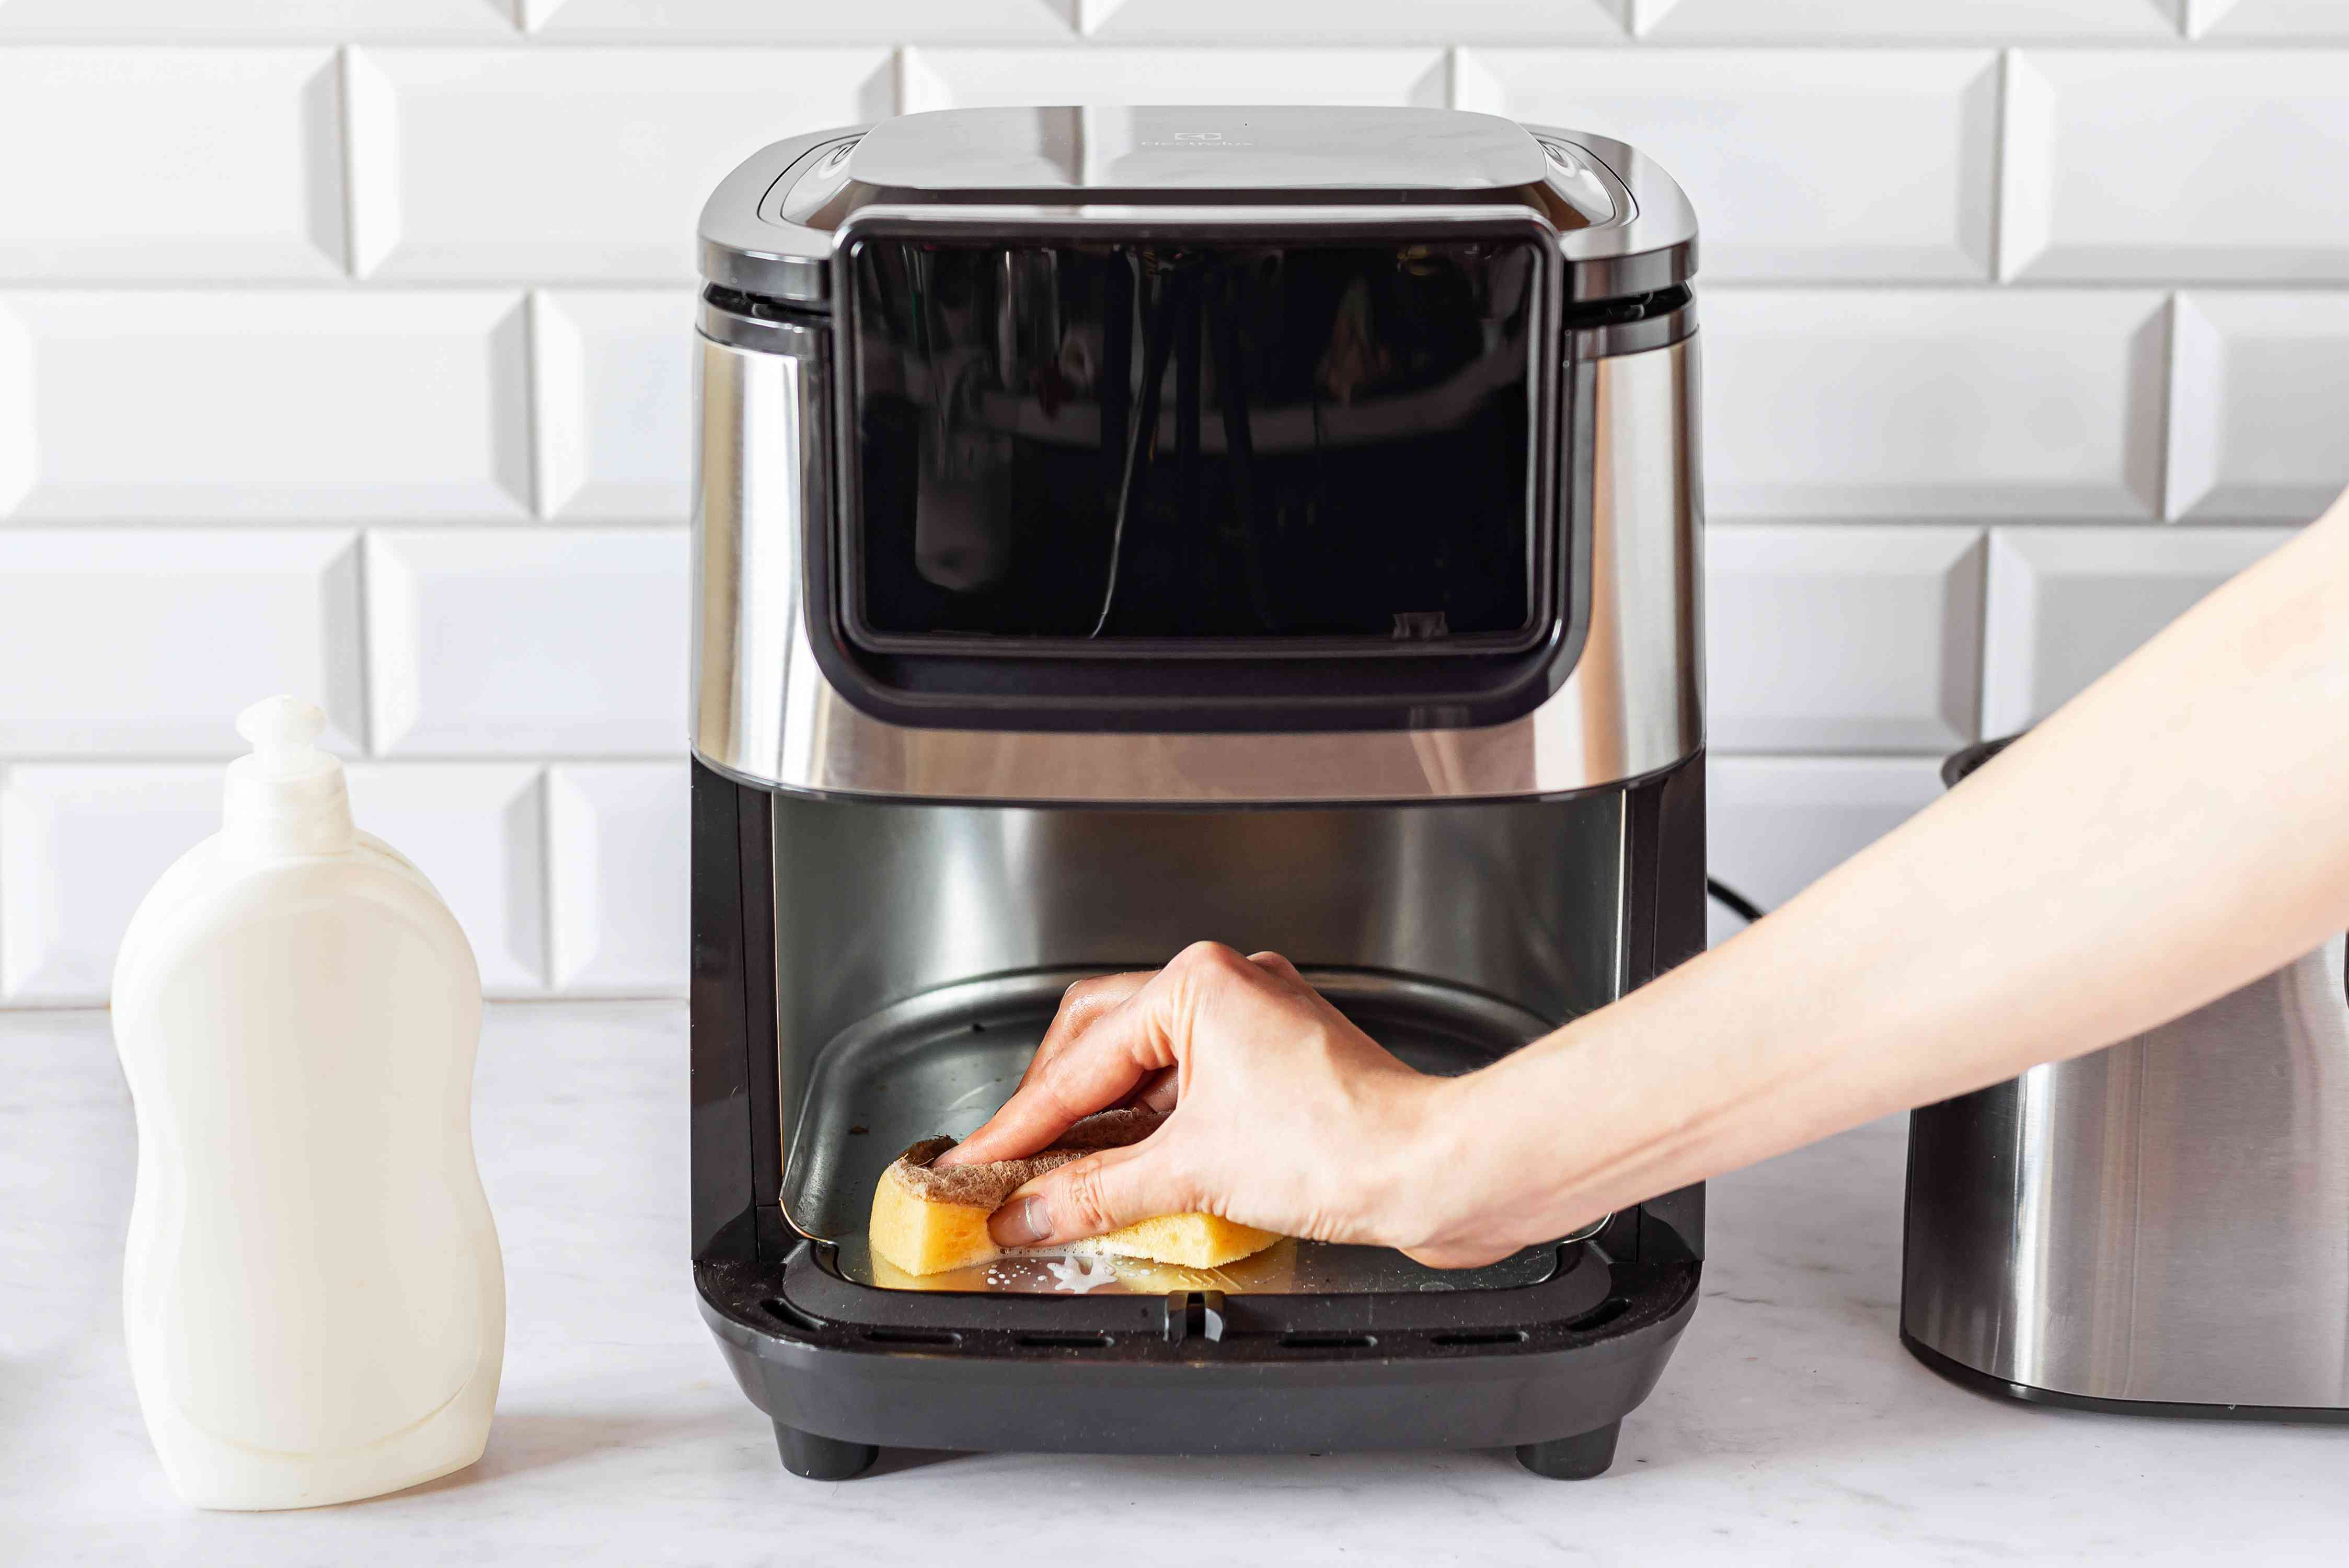 Air fryer base unit wiped down with non-abrasive sponge, warm water and dishwashing liquid